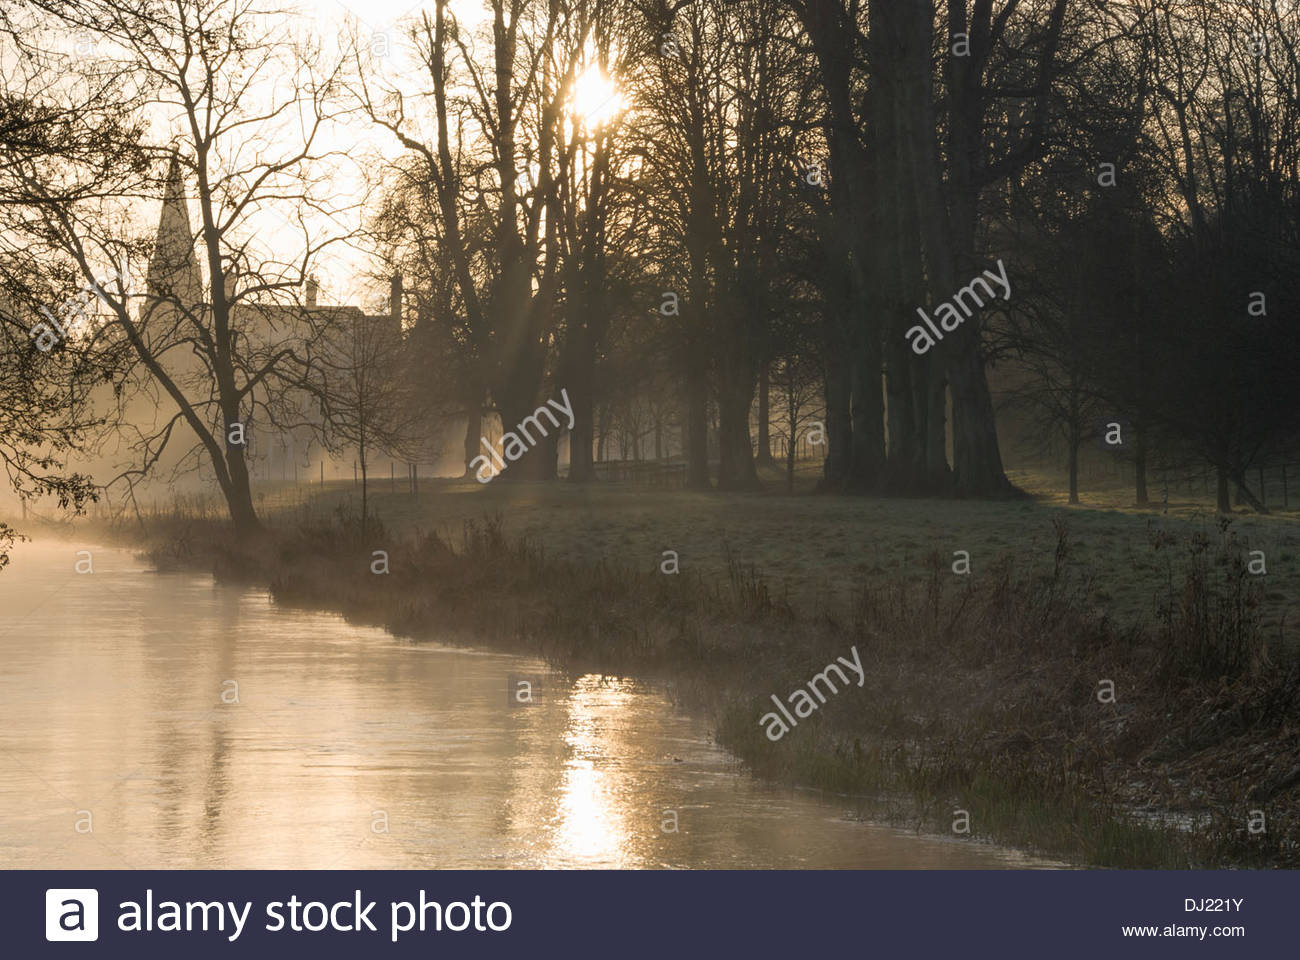 Mist rises from the River Lambourn as it runs through the grounds of Welford Park, Newbury, Berks, UK Stock Photo